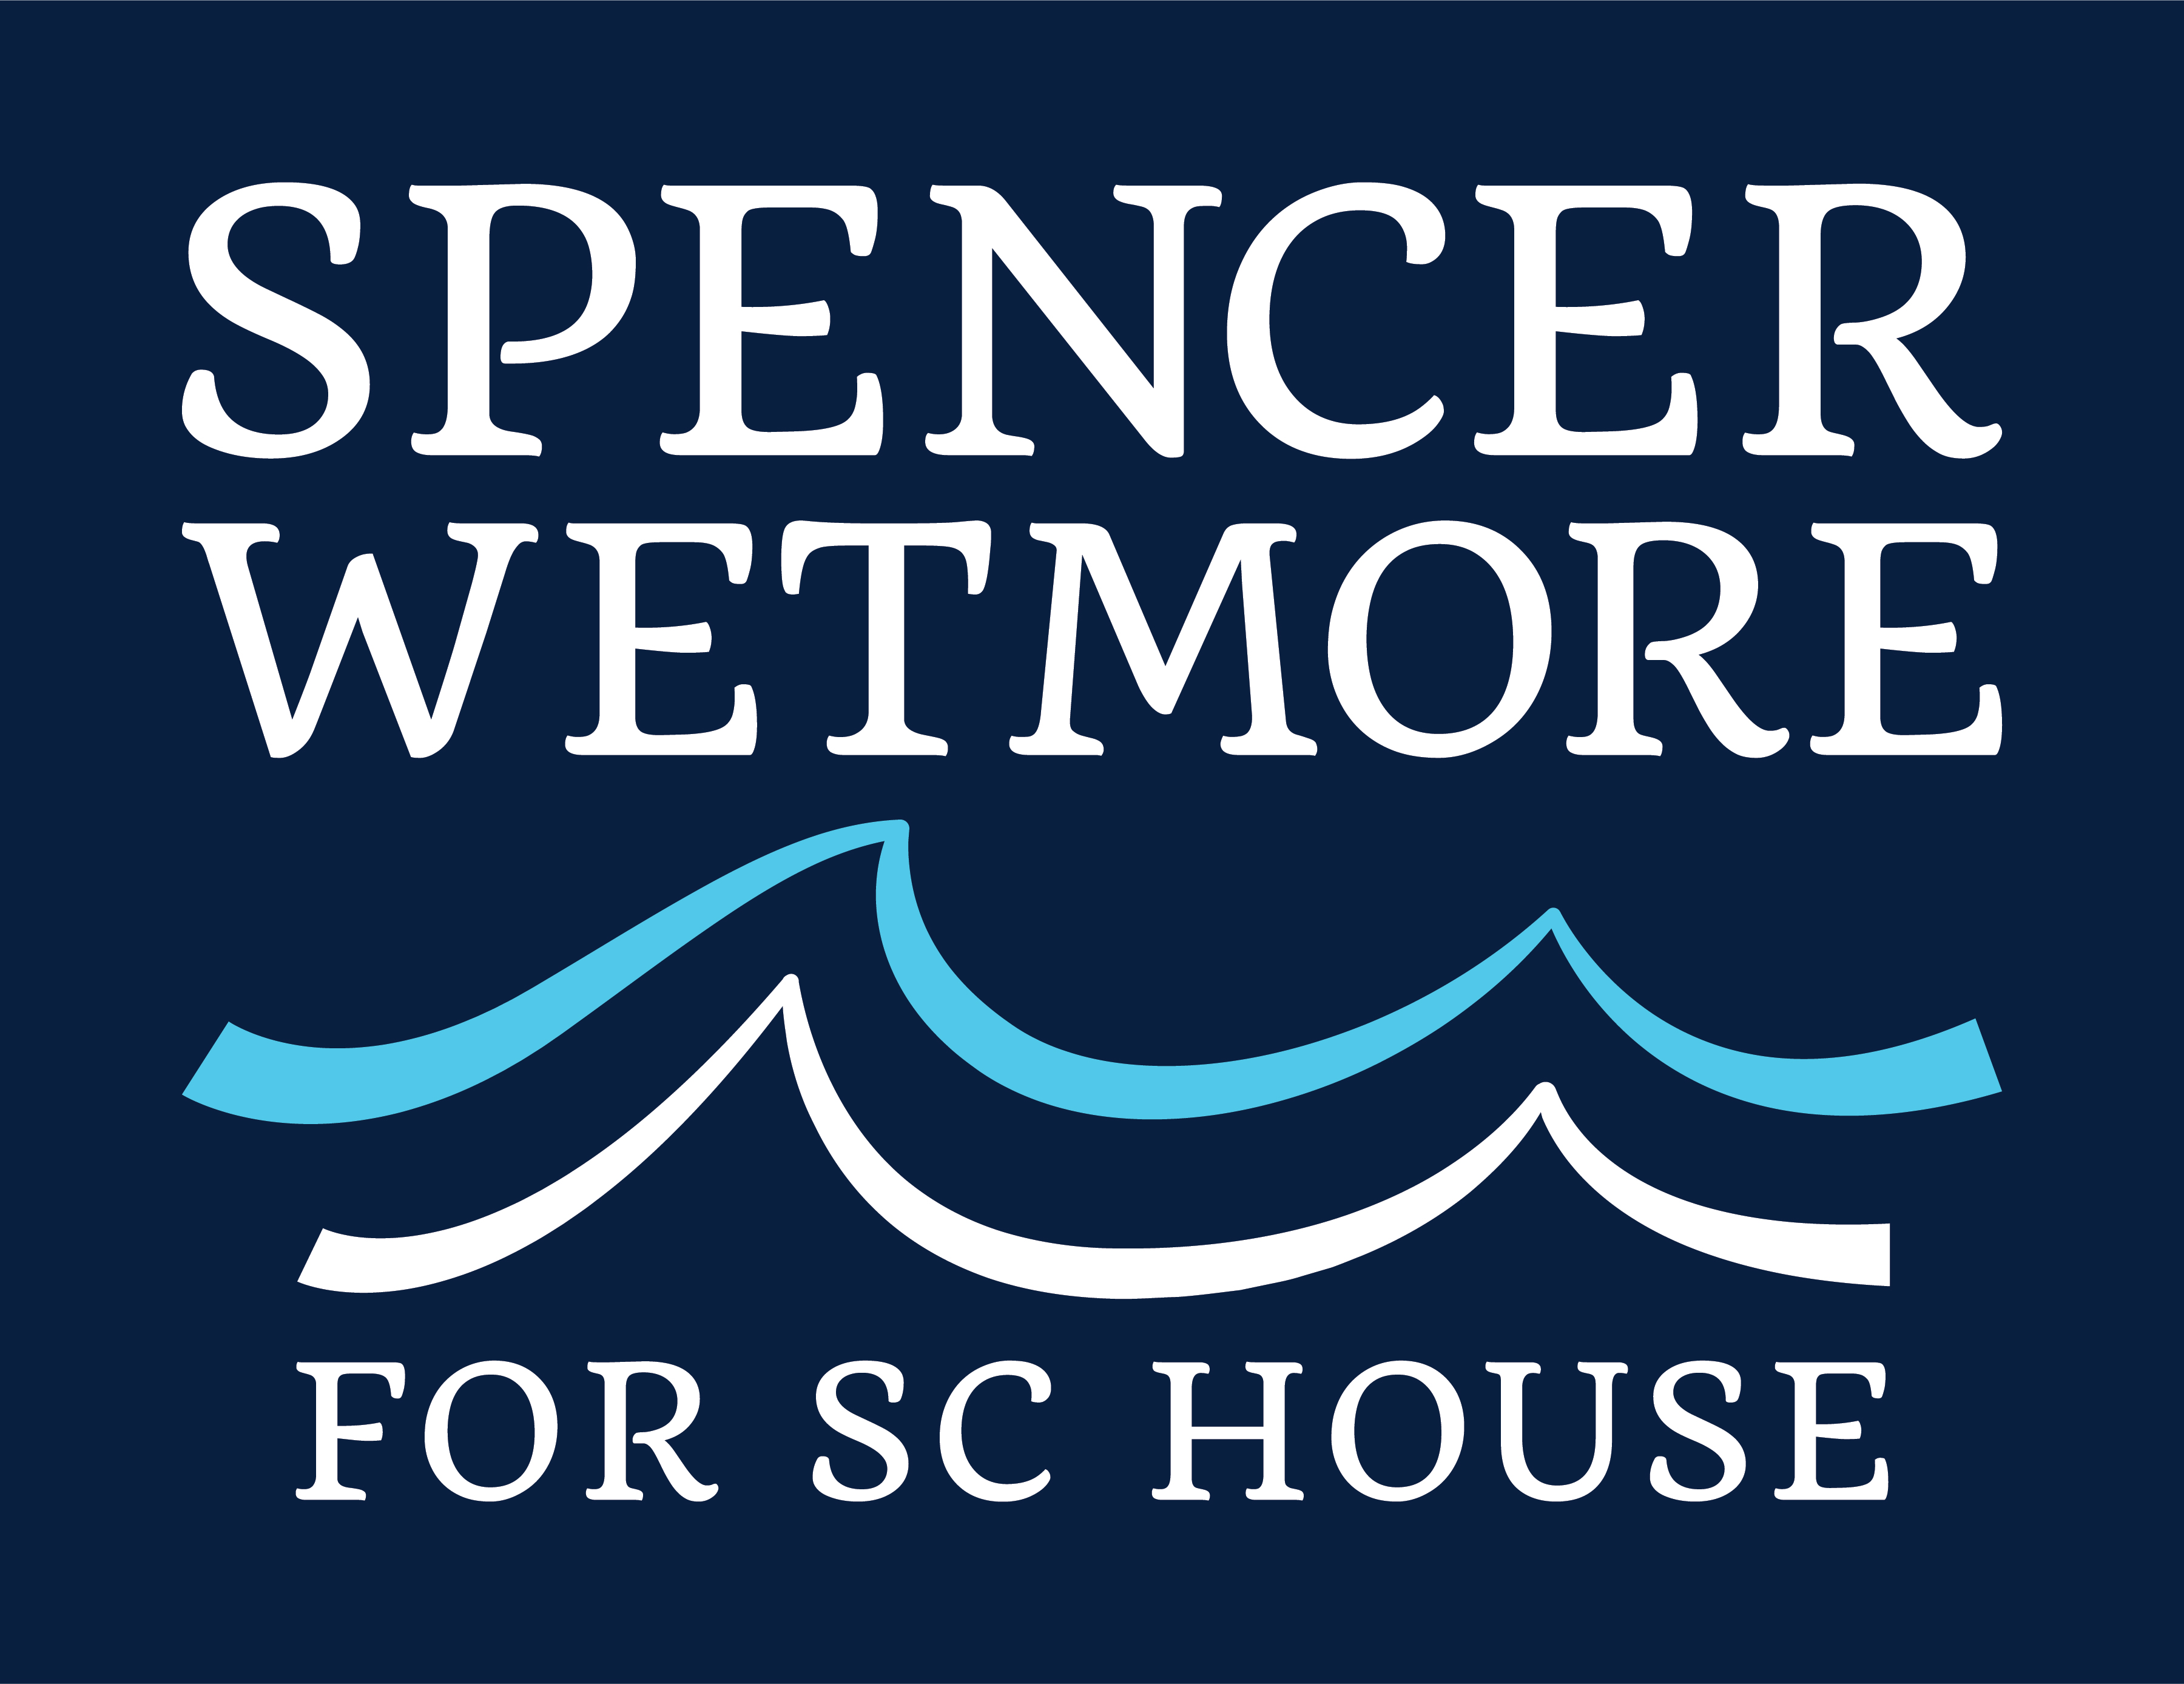 Spencer Wetmore for SC House